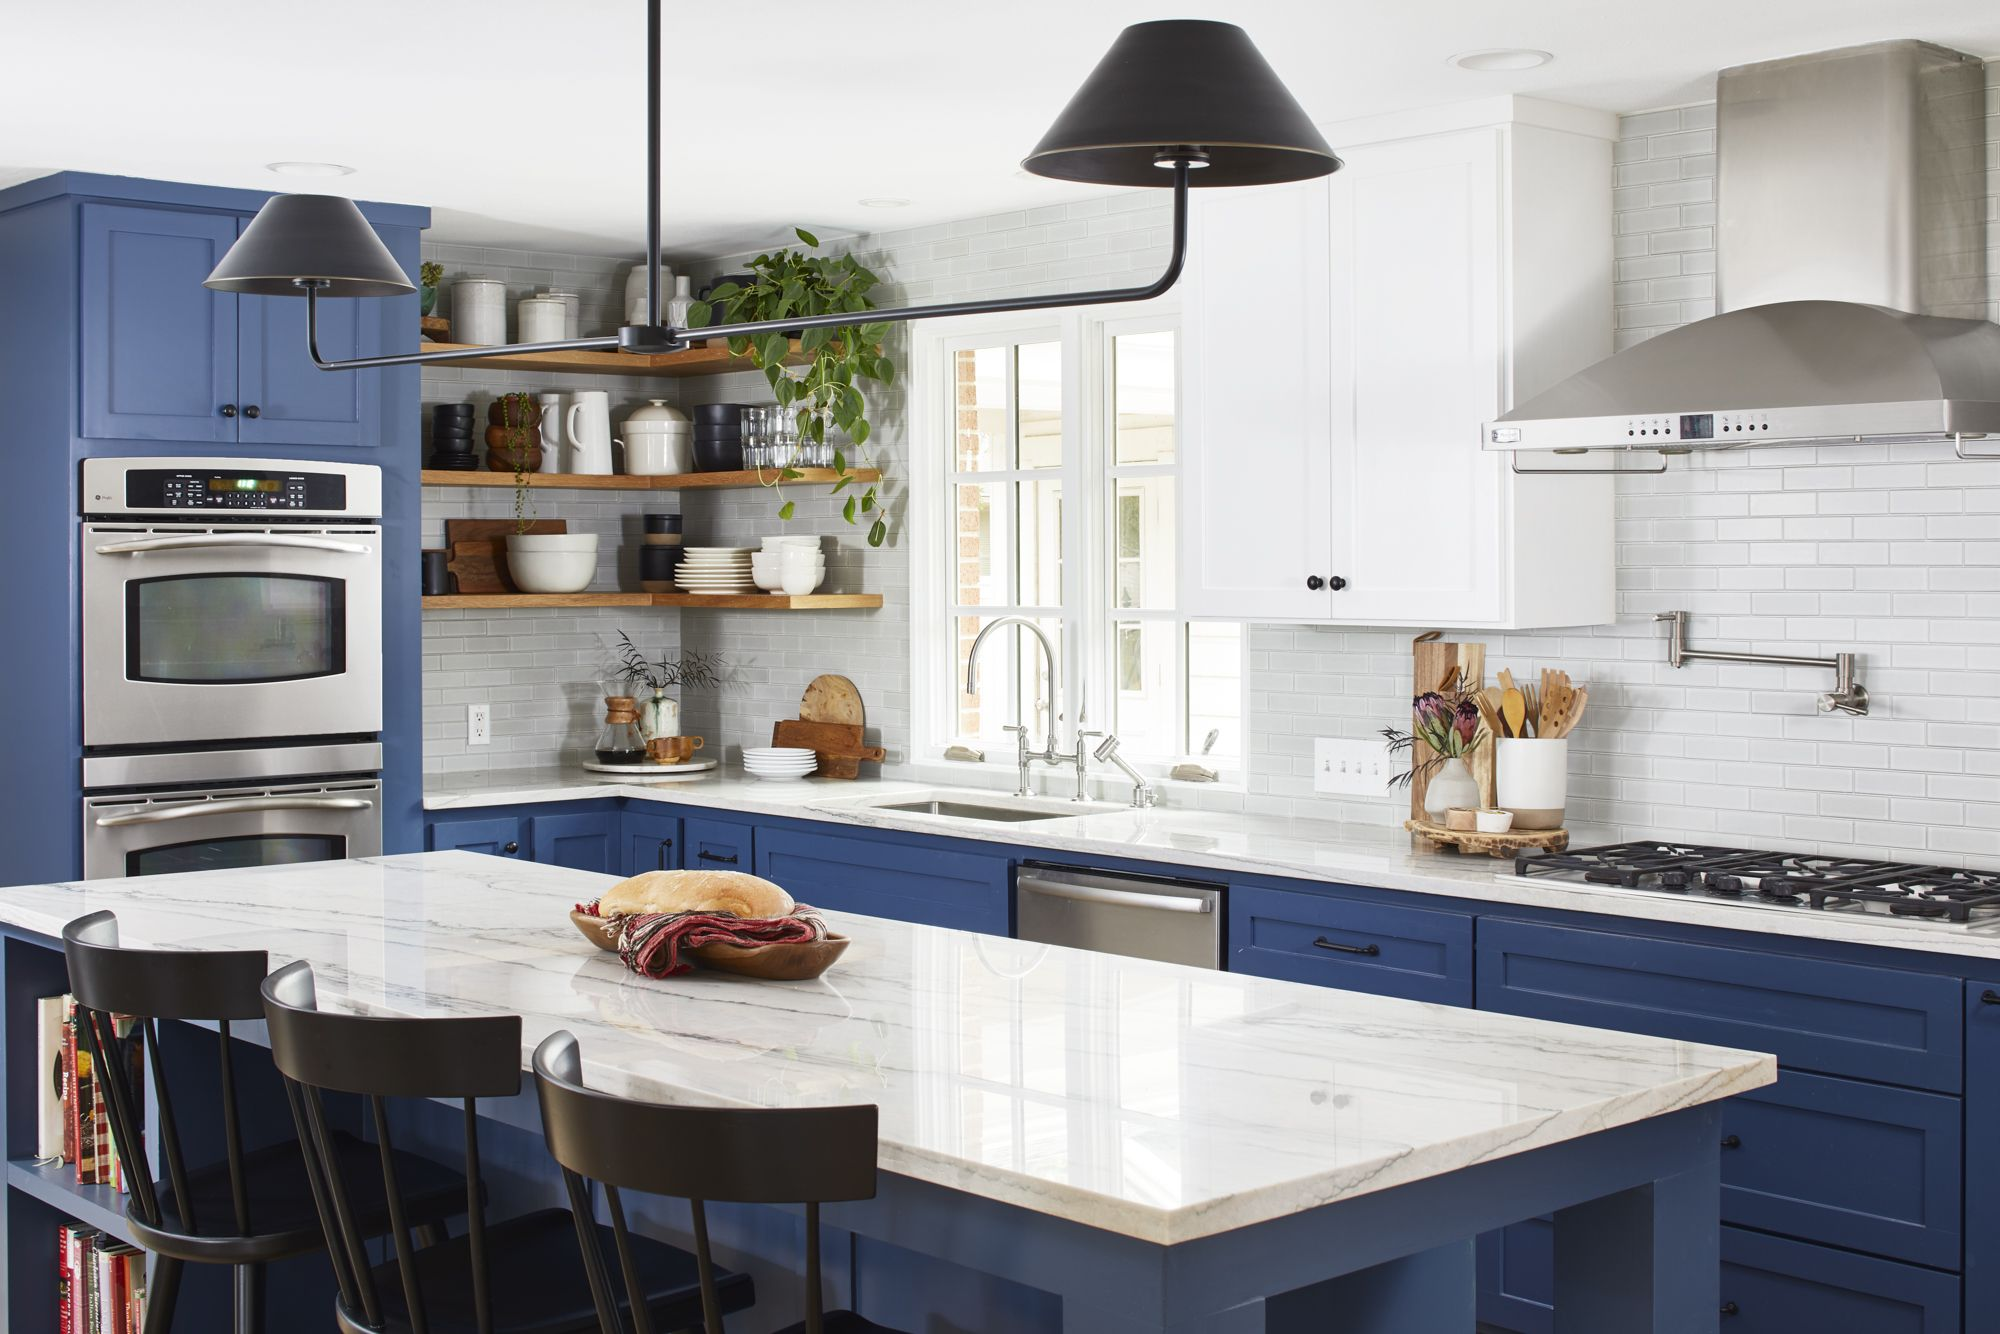 Suzanna Santostefano Design Blog Interior Designer Austin Texas Kitchen Countertop Options Island